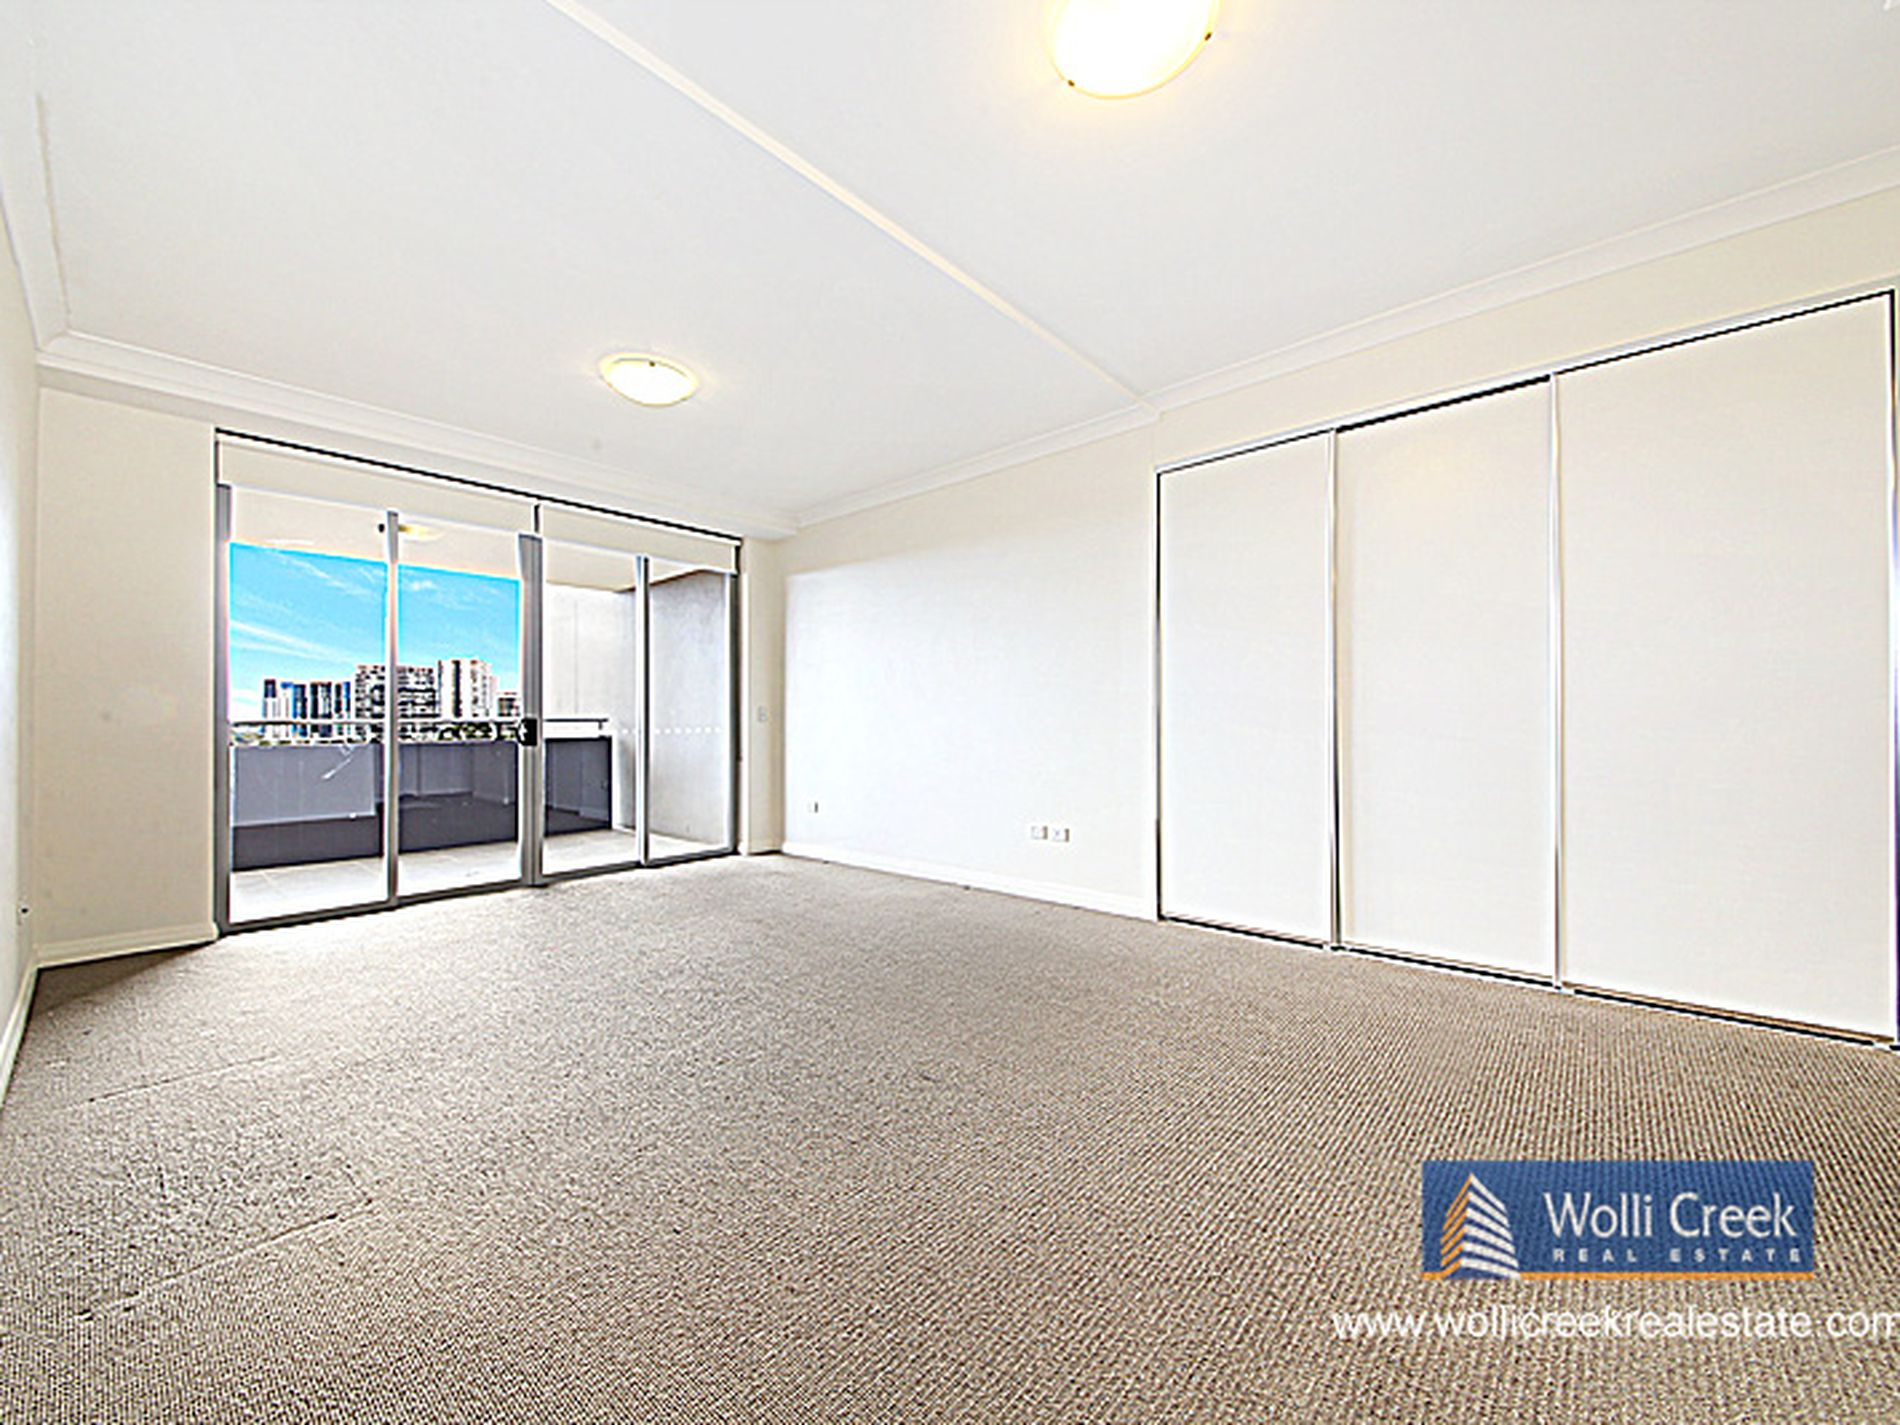 705 / 26 Marsh St, Wolli Creek